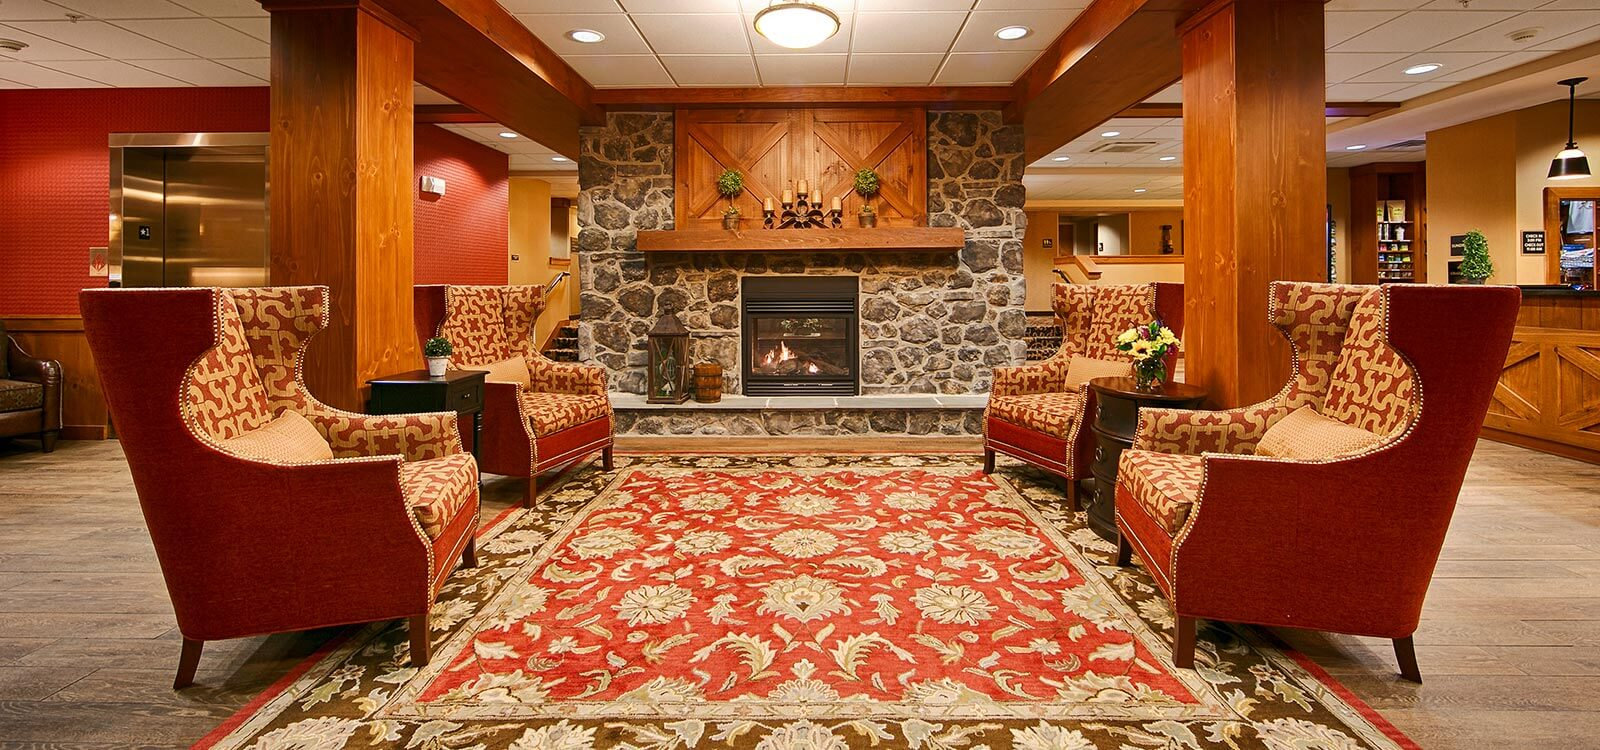 Best Western Plus Intercourse Village Inn & Suites, Pennsylvania